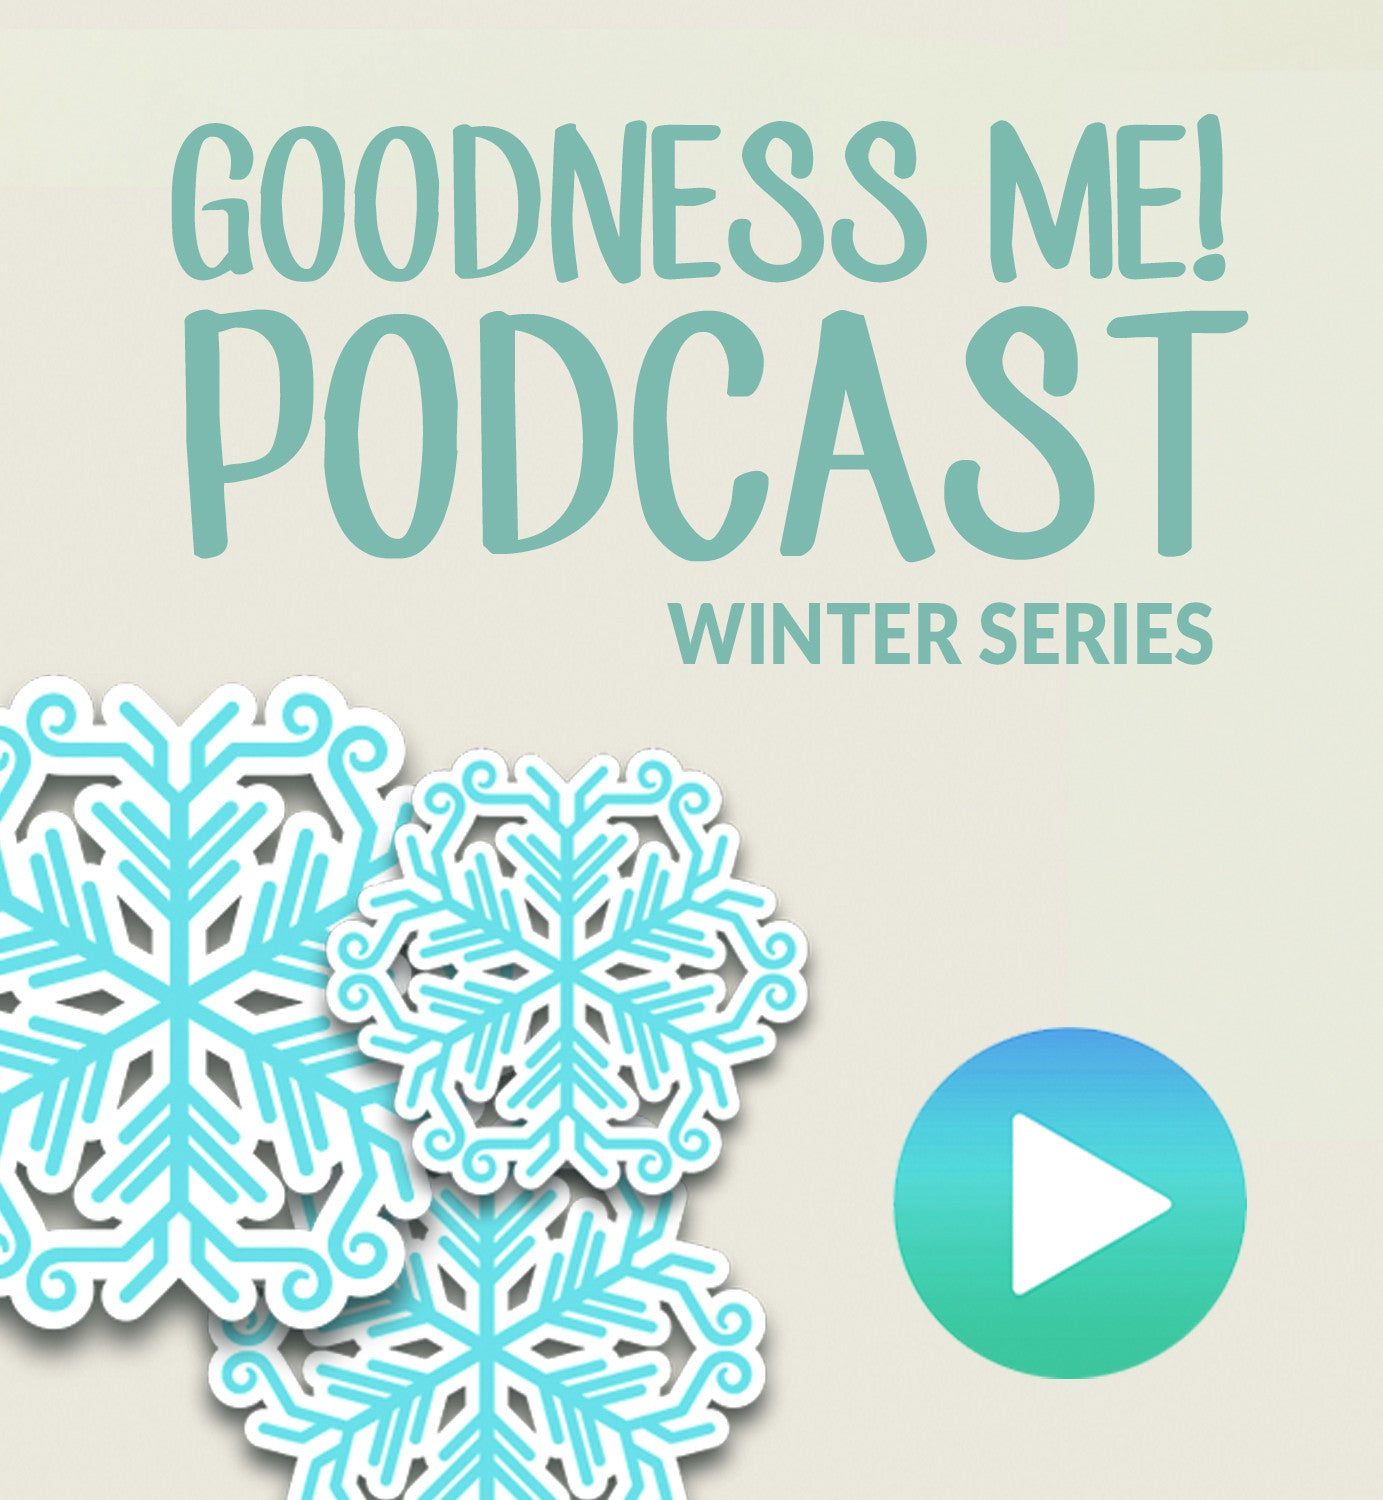 Jan 21 Goodness Me! Podcast - Part 2: What is Your Skin Telling You?